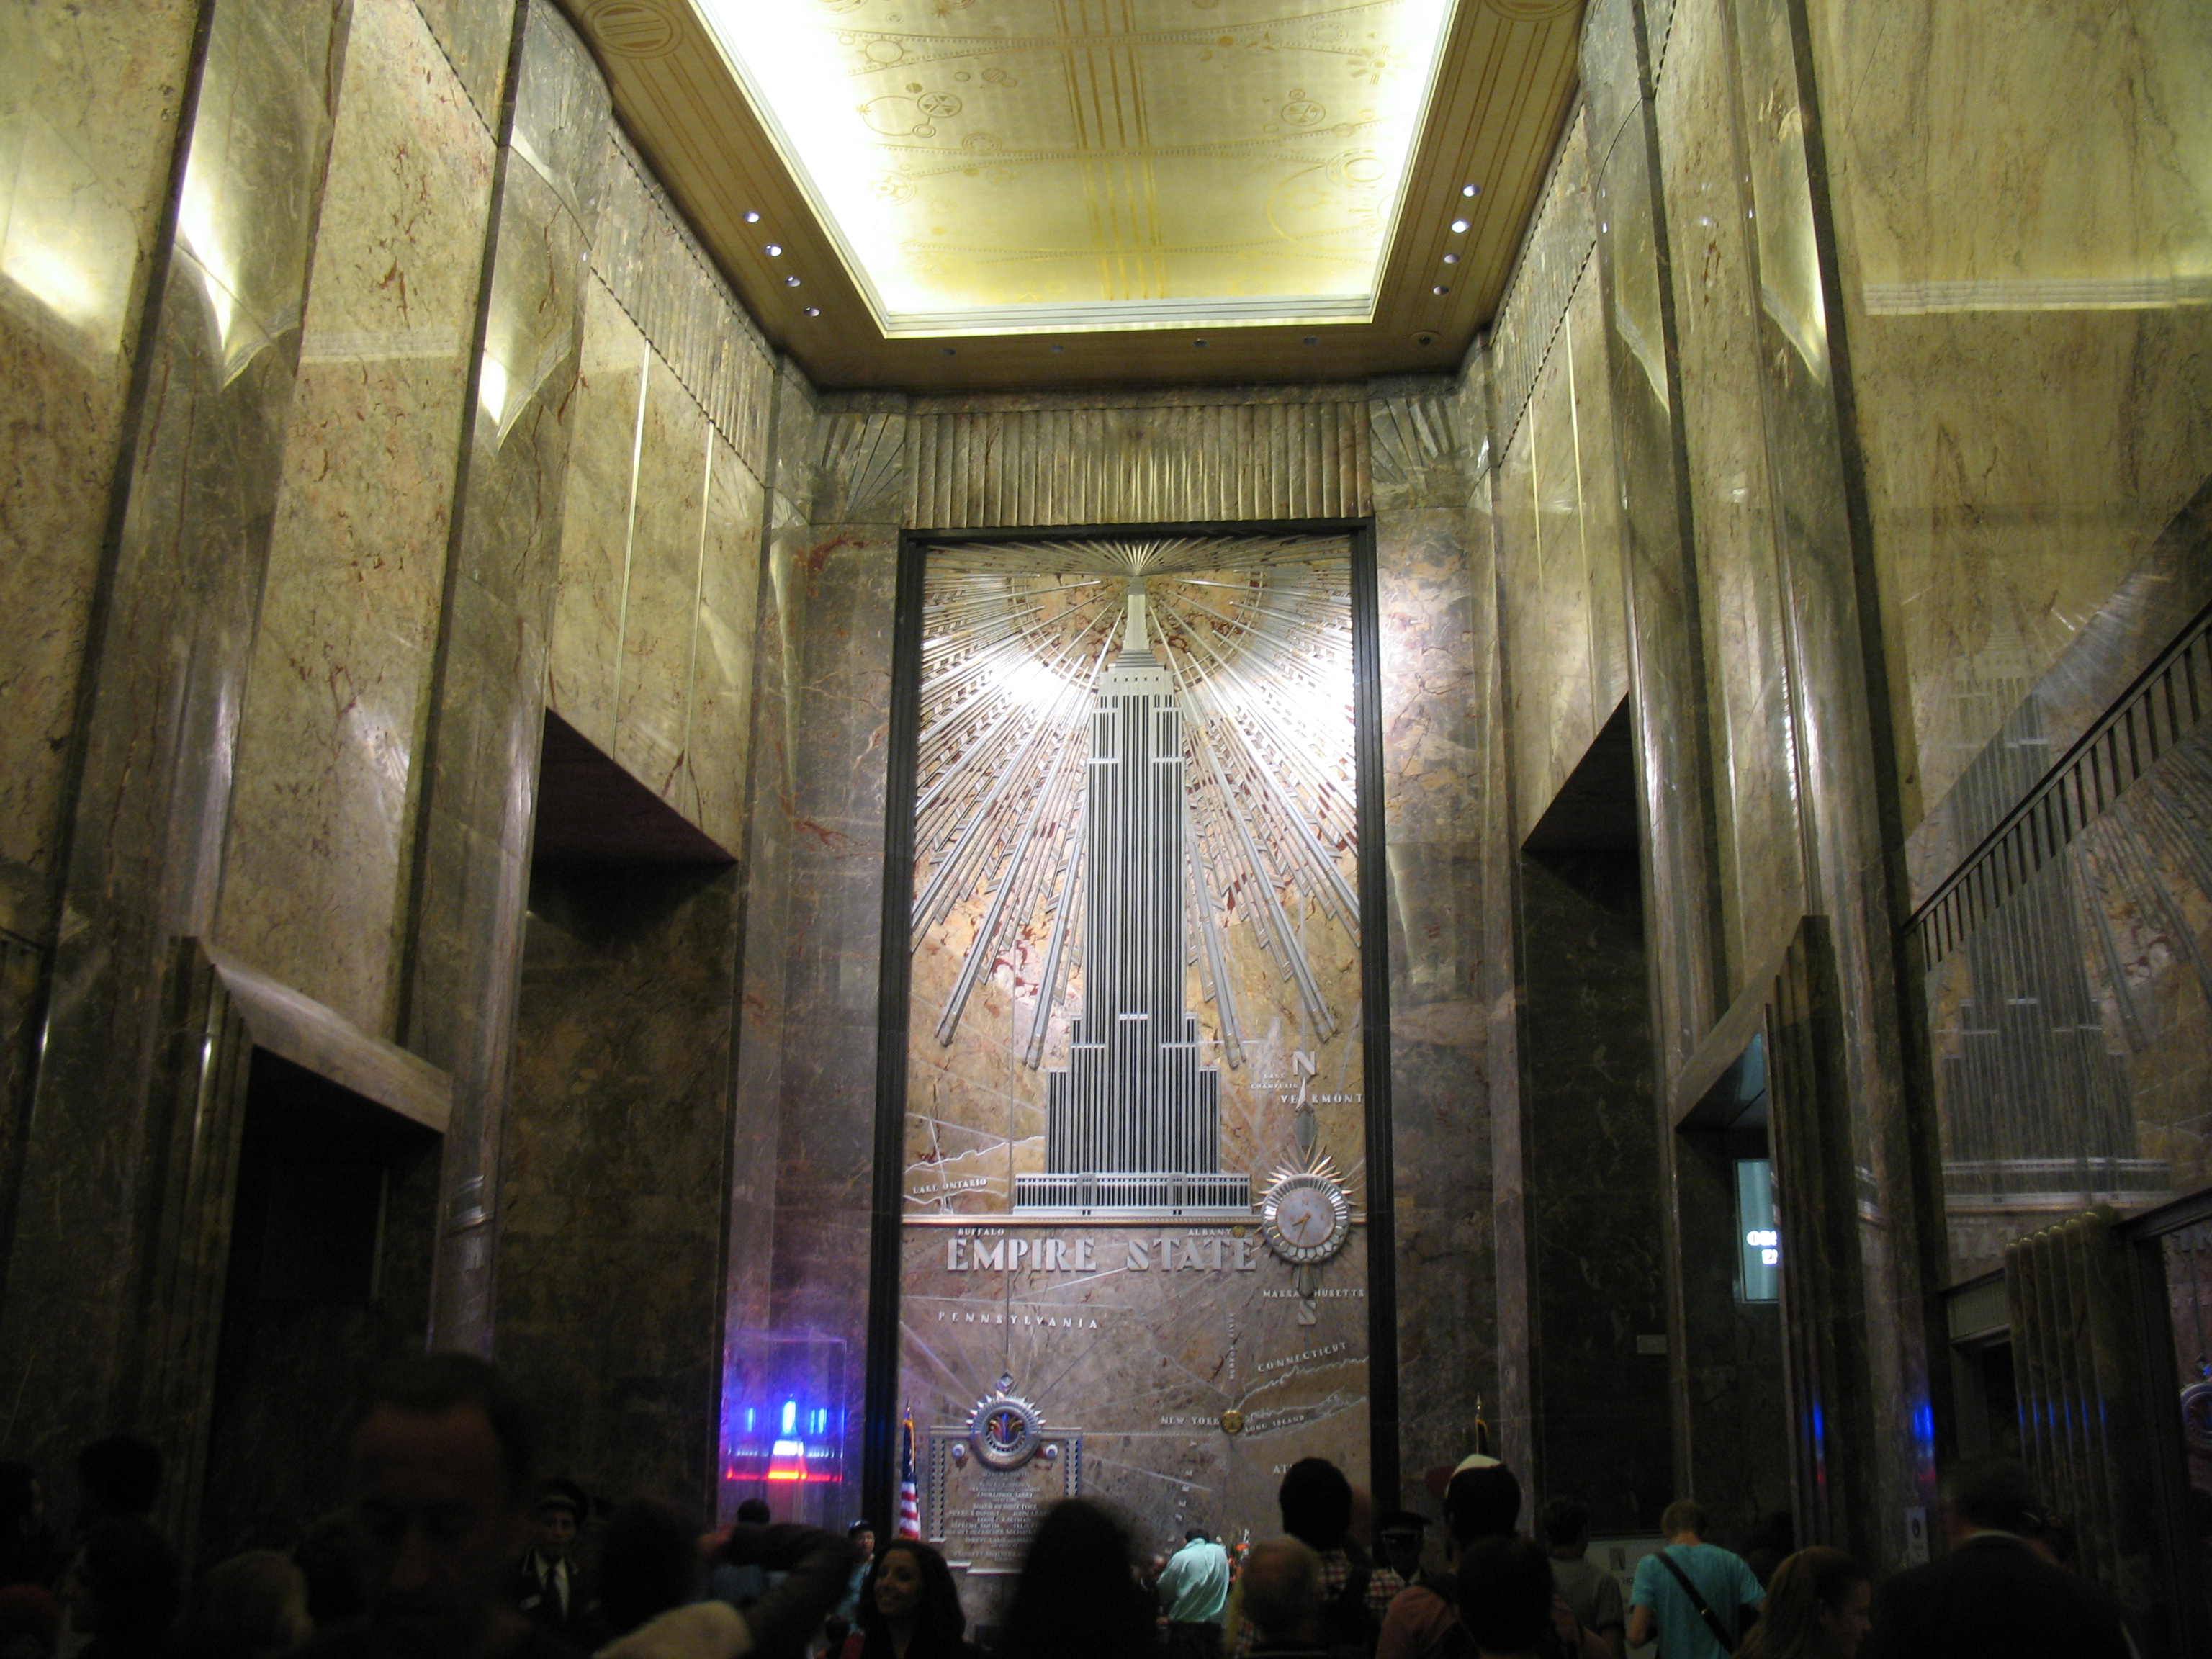 Empire state building interieur 28 images fifth avenue for Algerie ministere interieur